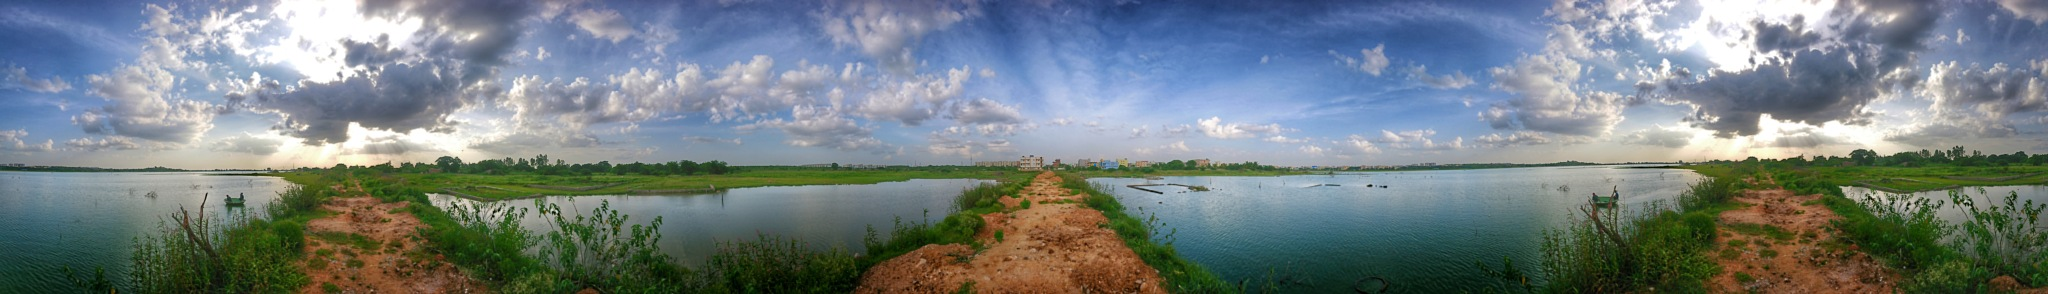 Ameenpur Lake  by Photofountain